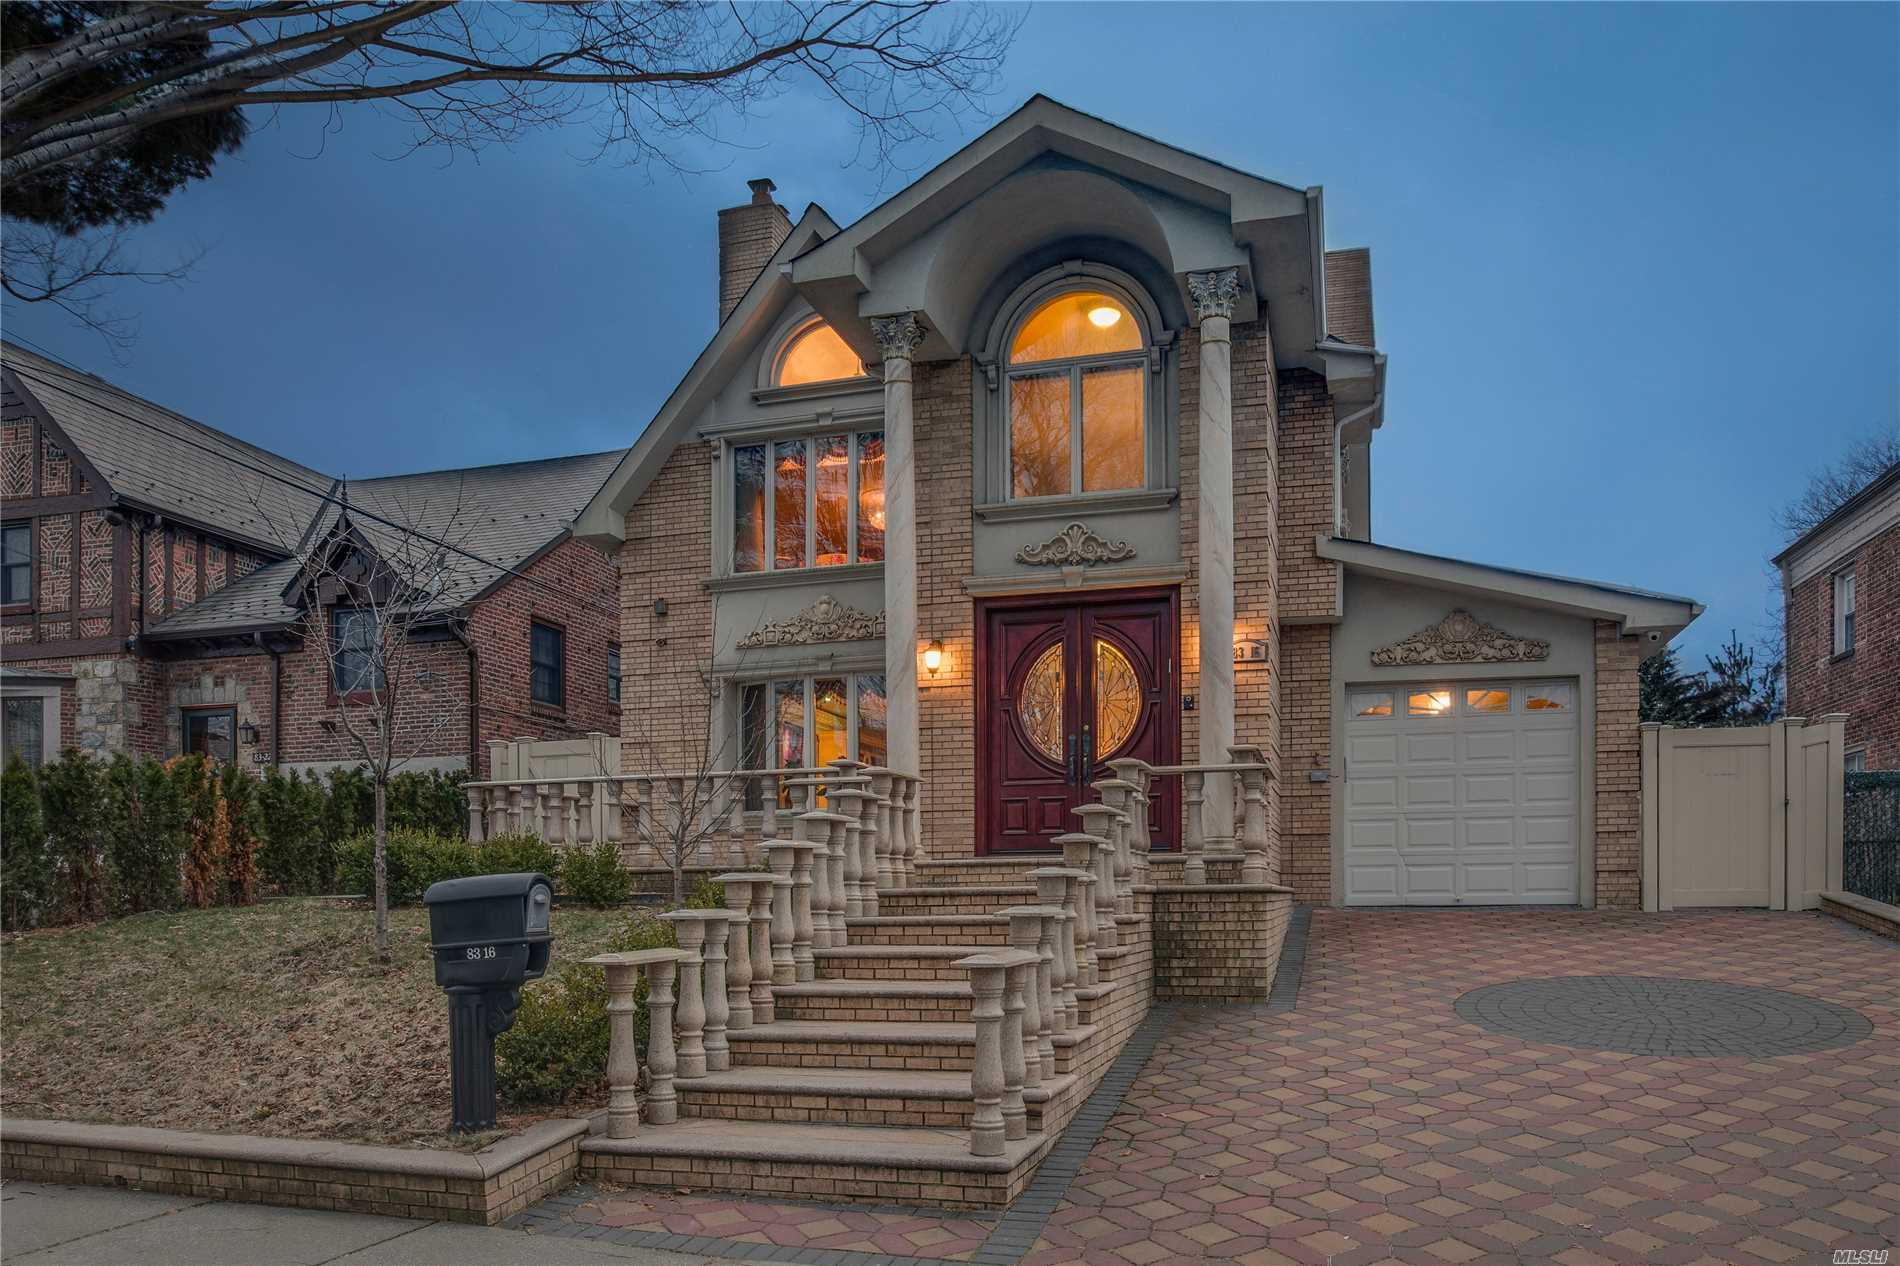 2012 Brick Colonial Crafted W/Amazing Attention To Details, Venetian Plaster Thru Out, Custom Moldings, Custom Closets & Cabinetry, Marble Wood Burning Fire Place, Radiant Heat Tile Floors, Etc. 1st Fl Features A Welcoming Foyer, Airy L/R, Formal D/R, Powder Rm, Master Suite. The Eat In Kitchen Has A Cathedral Ceiling With Skylights Center Island, Breakfast Nook And A Sliding Door Leading To A Covered Deck And Private Fenced Paved Patio. The 2nd Fl Lays A Larger Master Suite, 2 Additional B/Rs